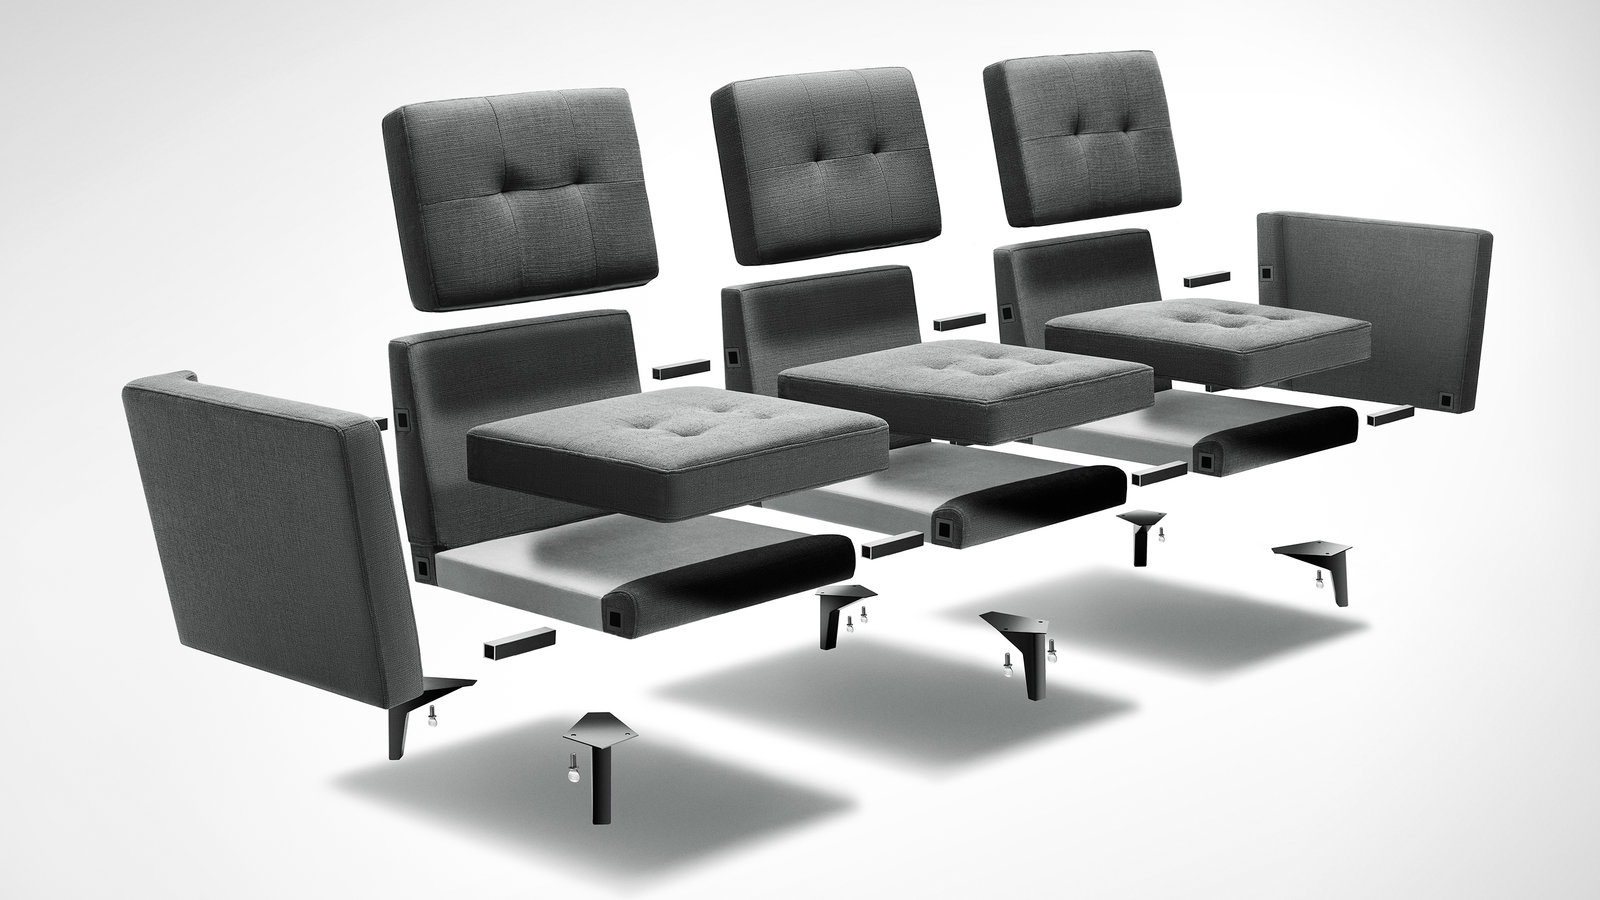 sofa king joke slipcovers for sofas with two seat cushions disassembly san francisco baci living room